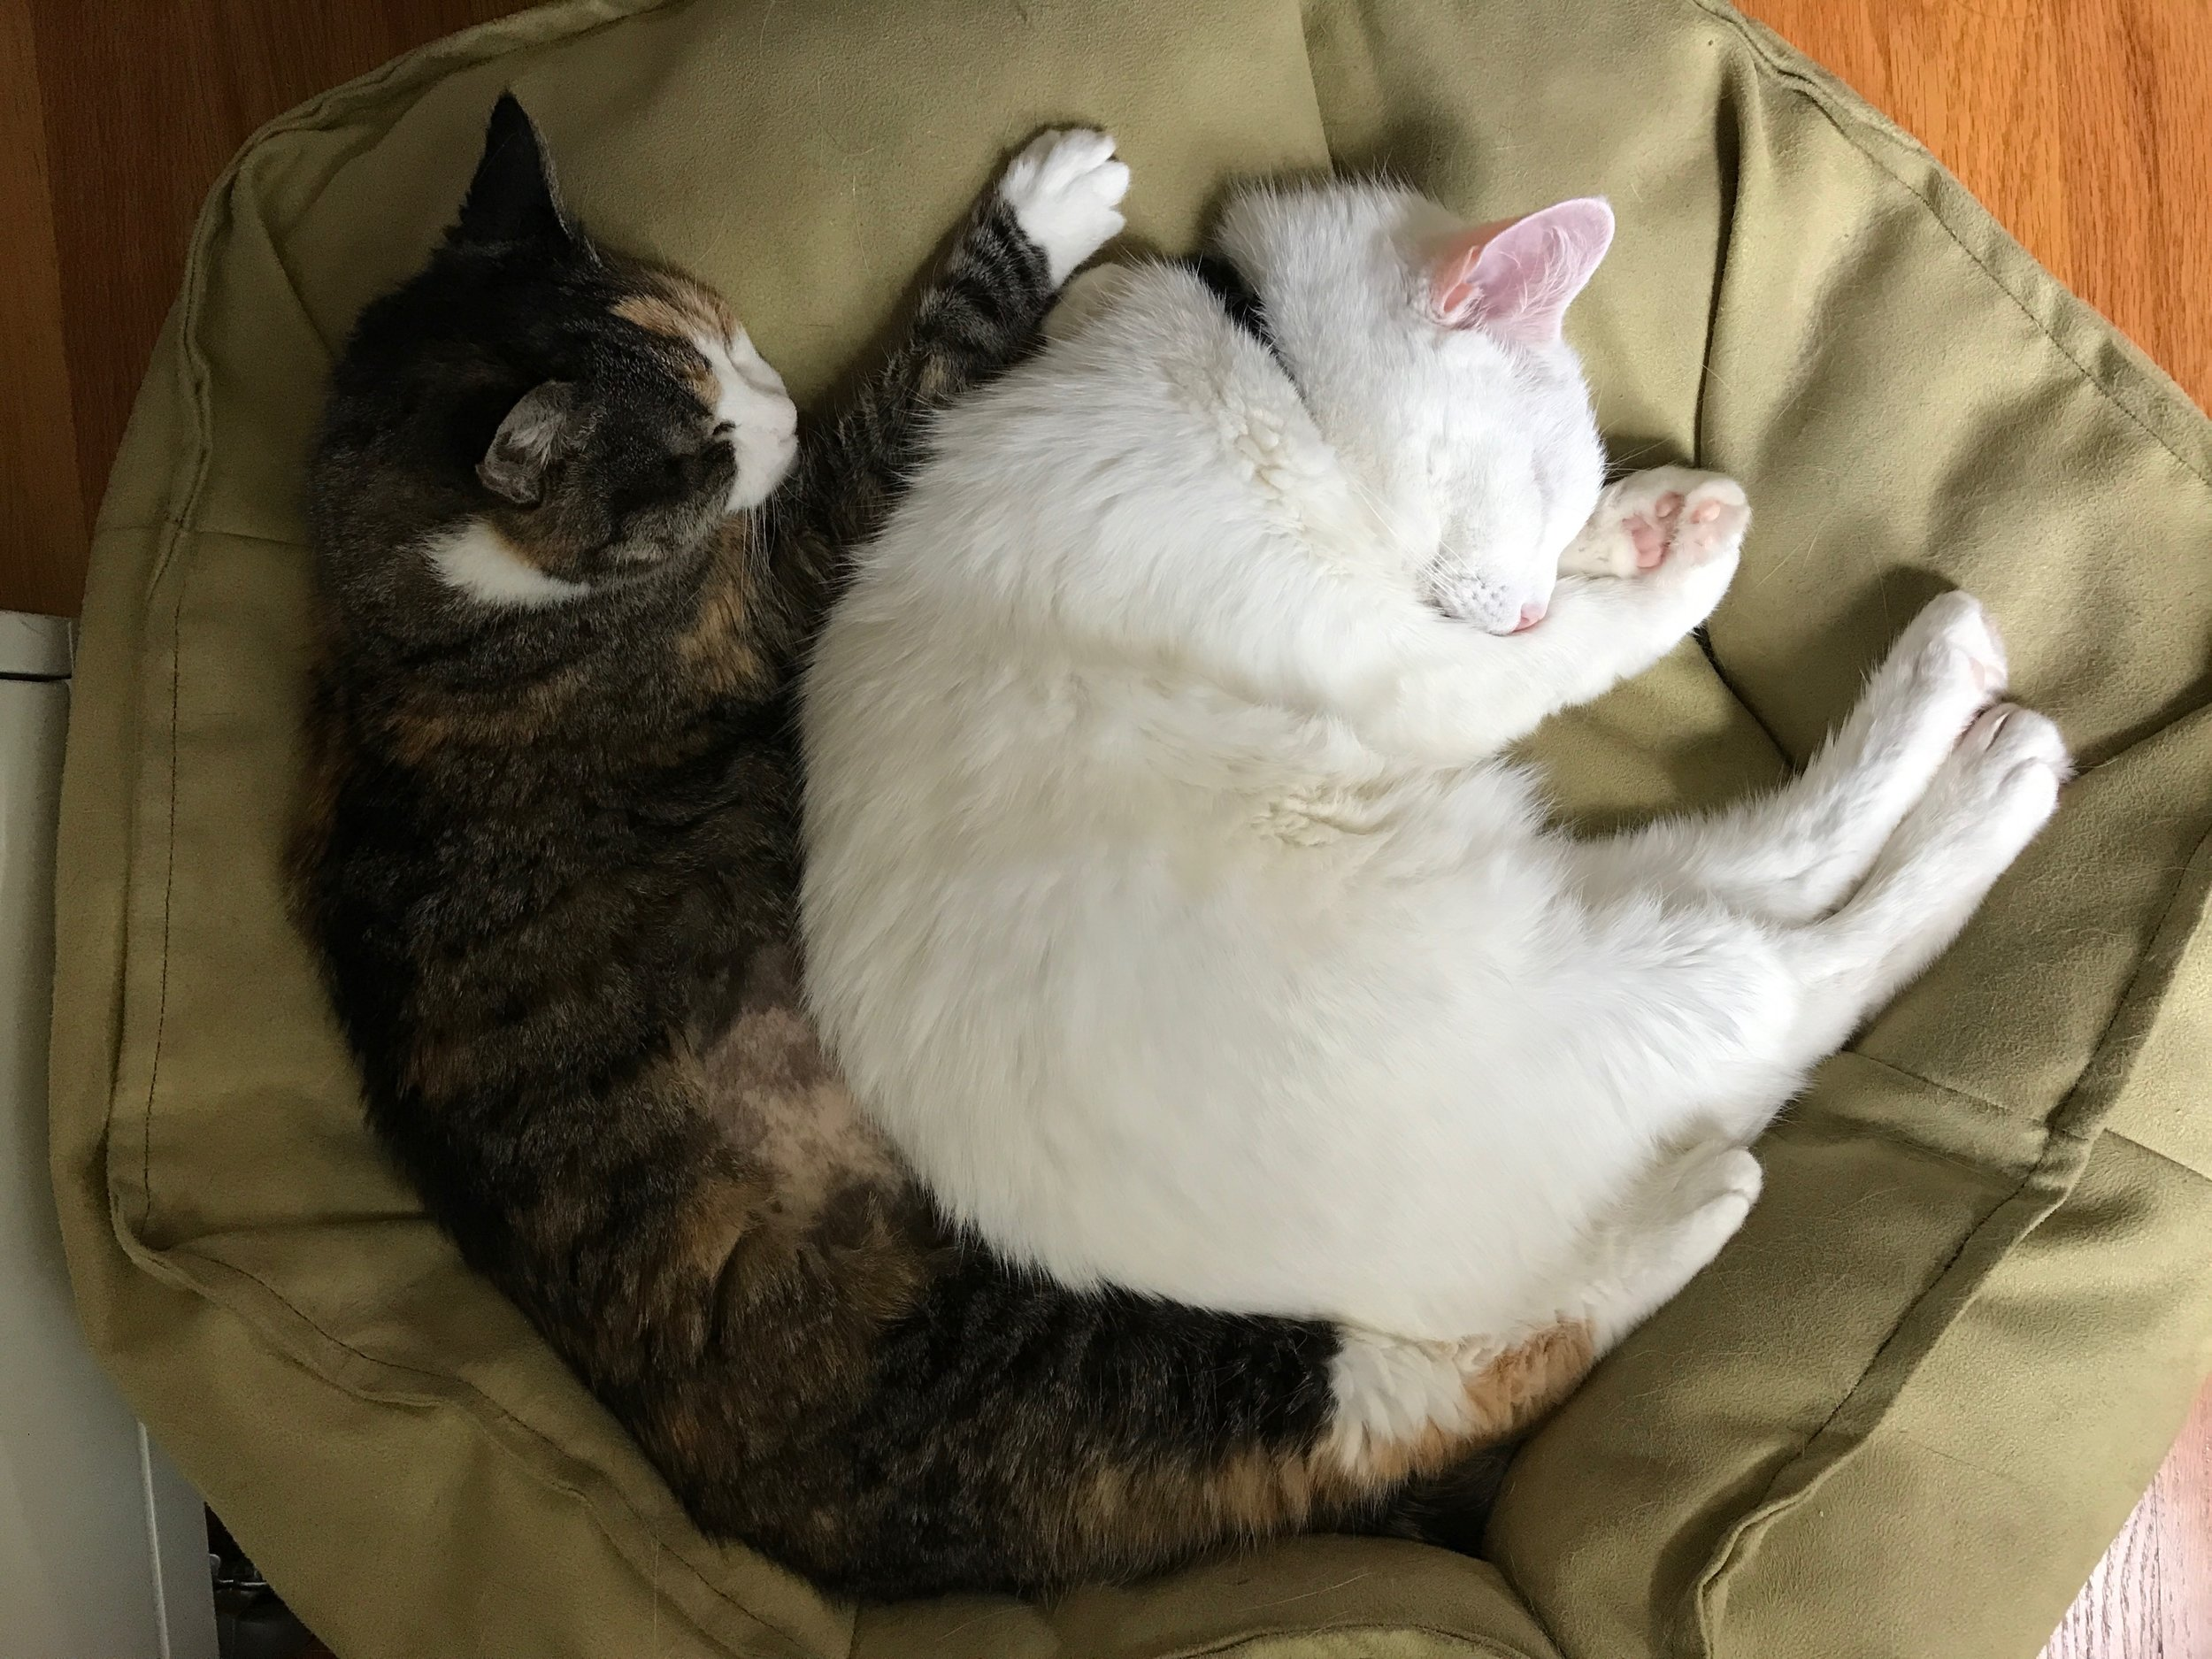 Martha + Vinny. Tussle and wrestle, but snuggle together more. 19 years young, full of sass and make me laugh.